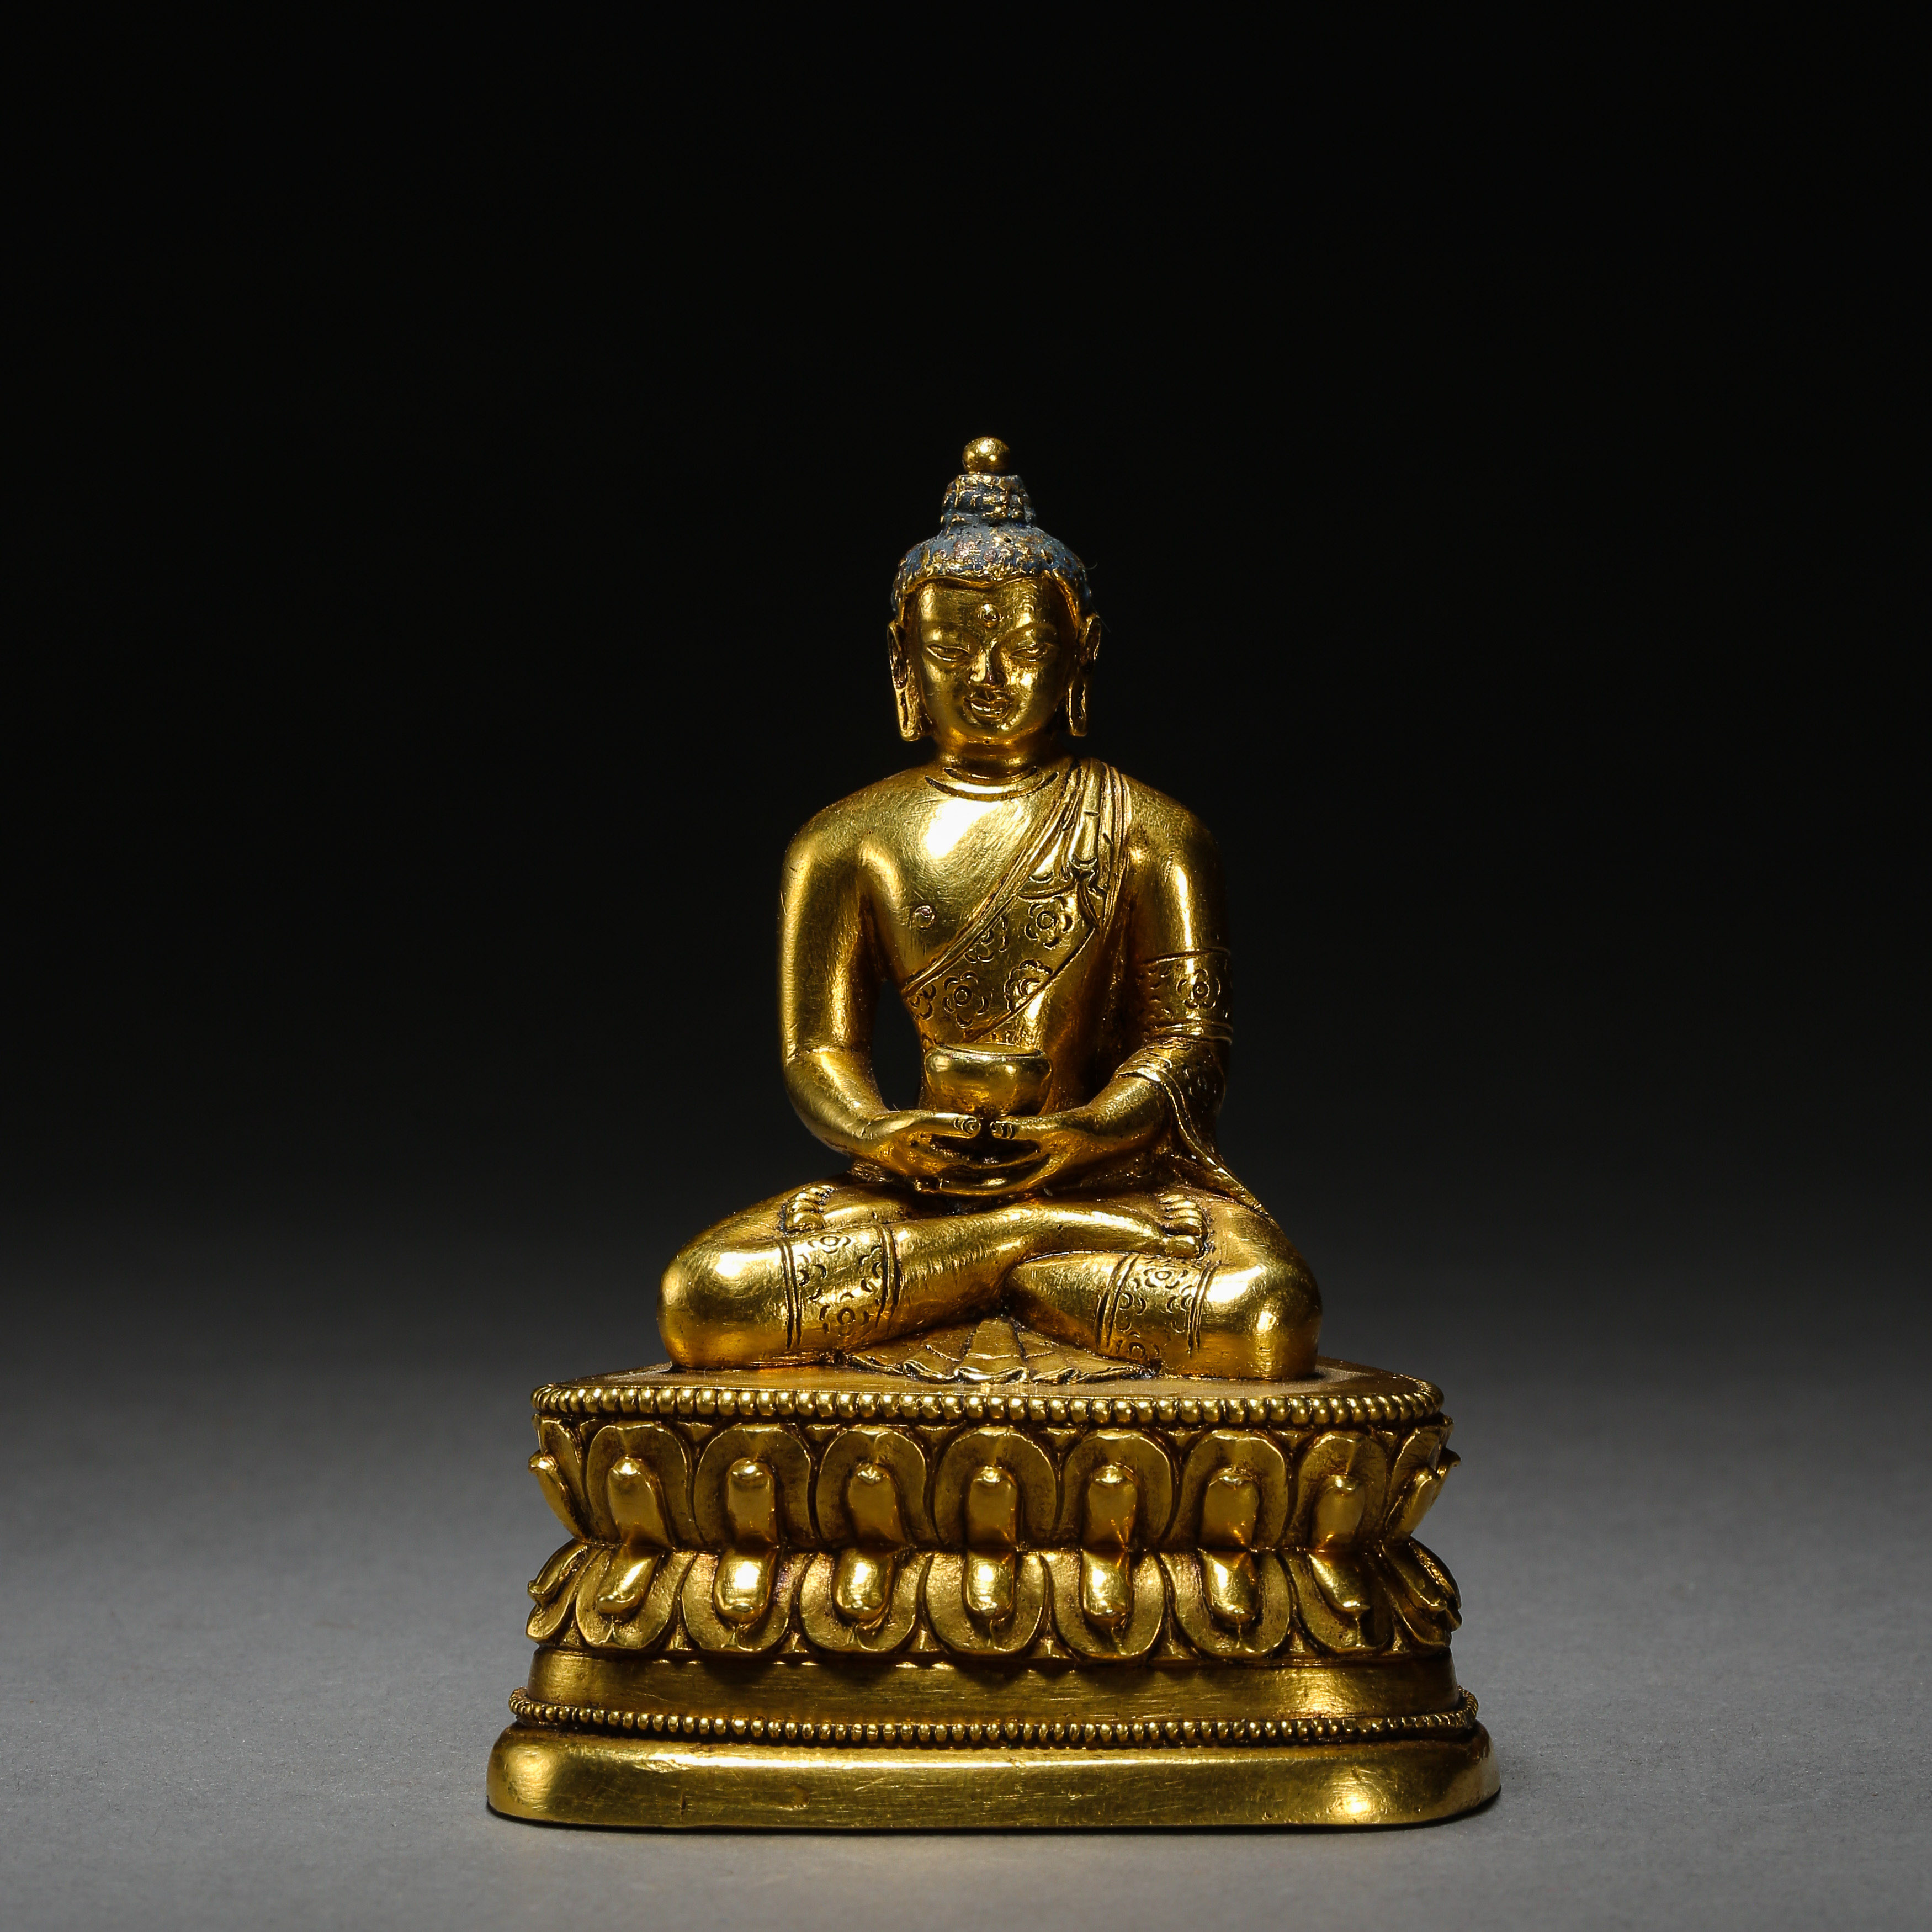 SEATED GILT BRONZE BUDDHA, QING DYNASTY, CHINA - Image 4 of 11